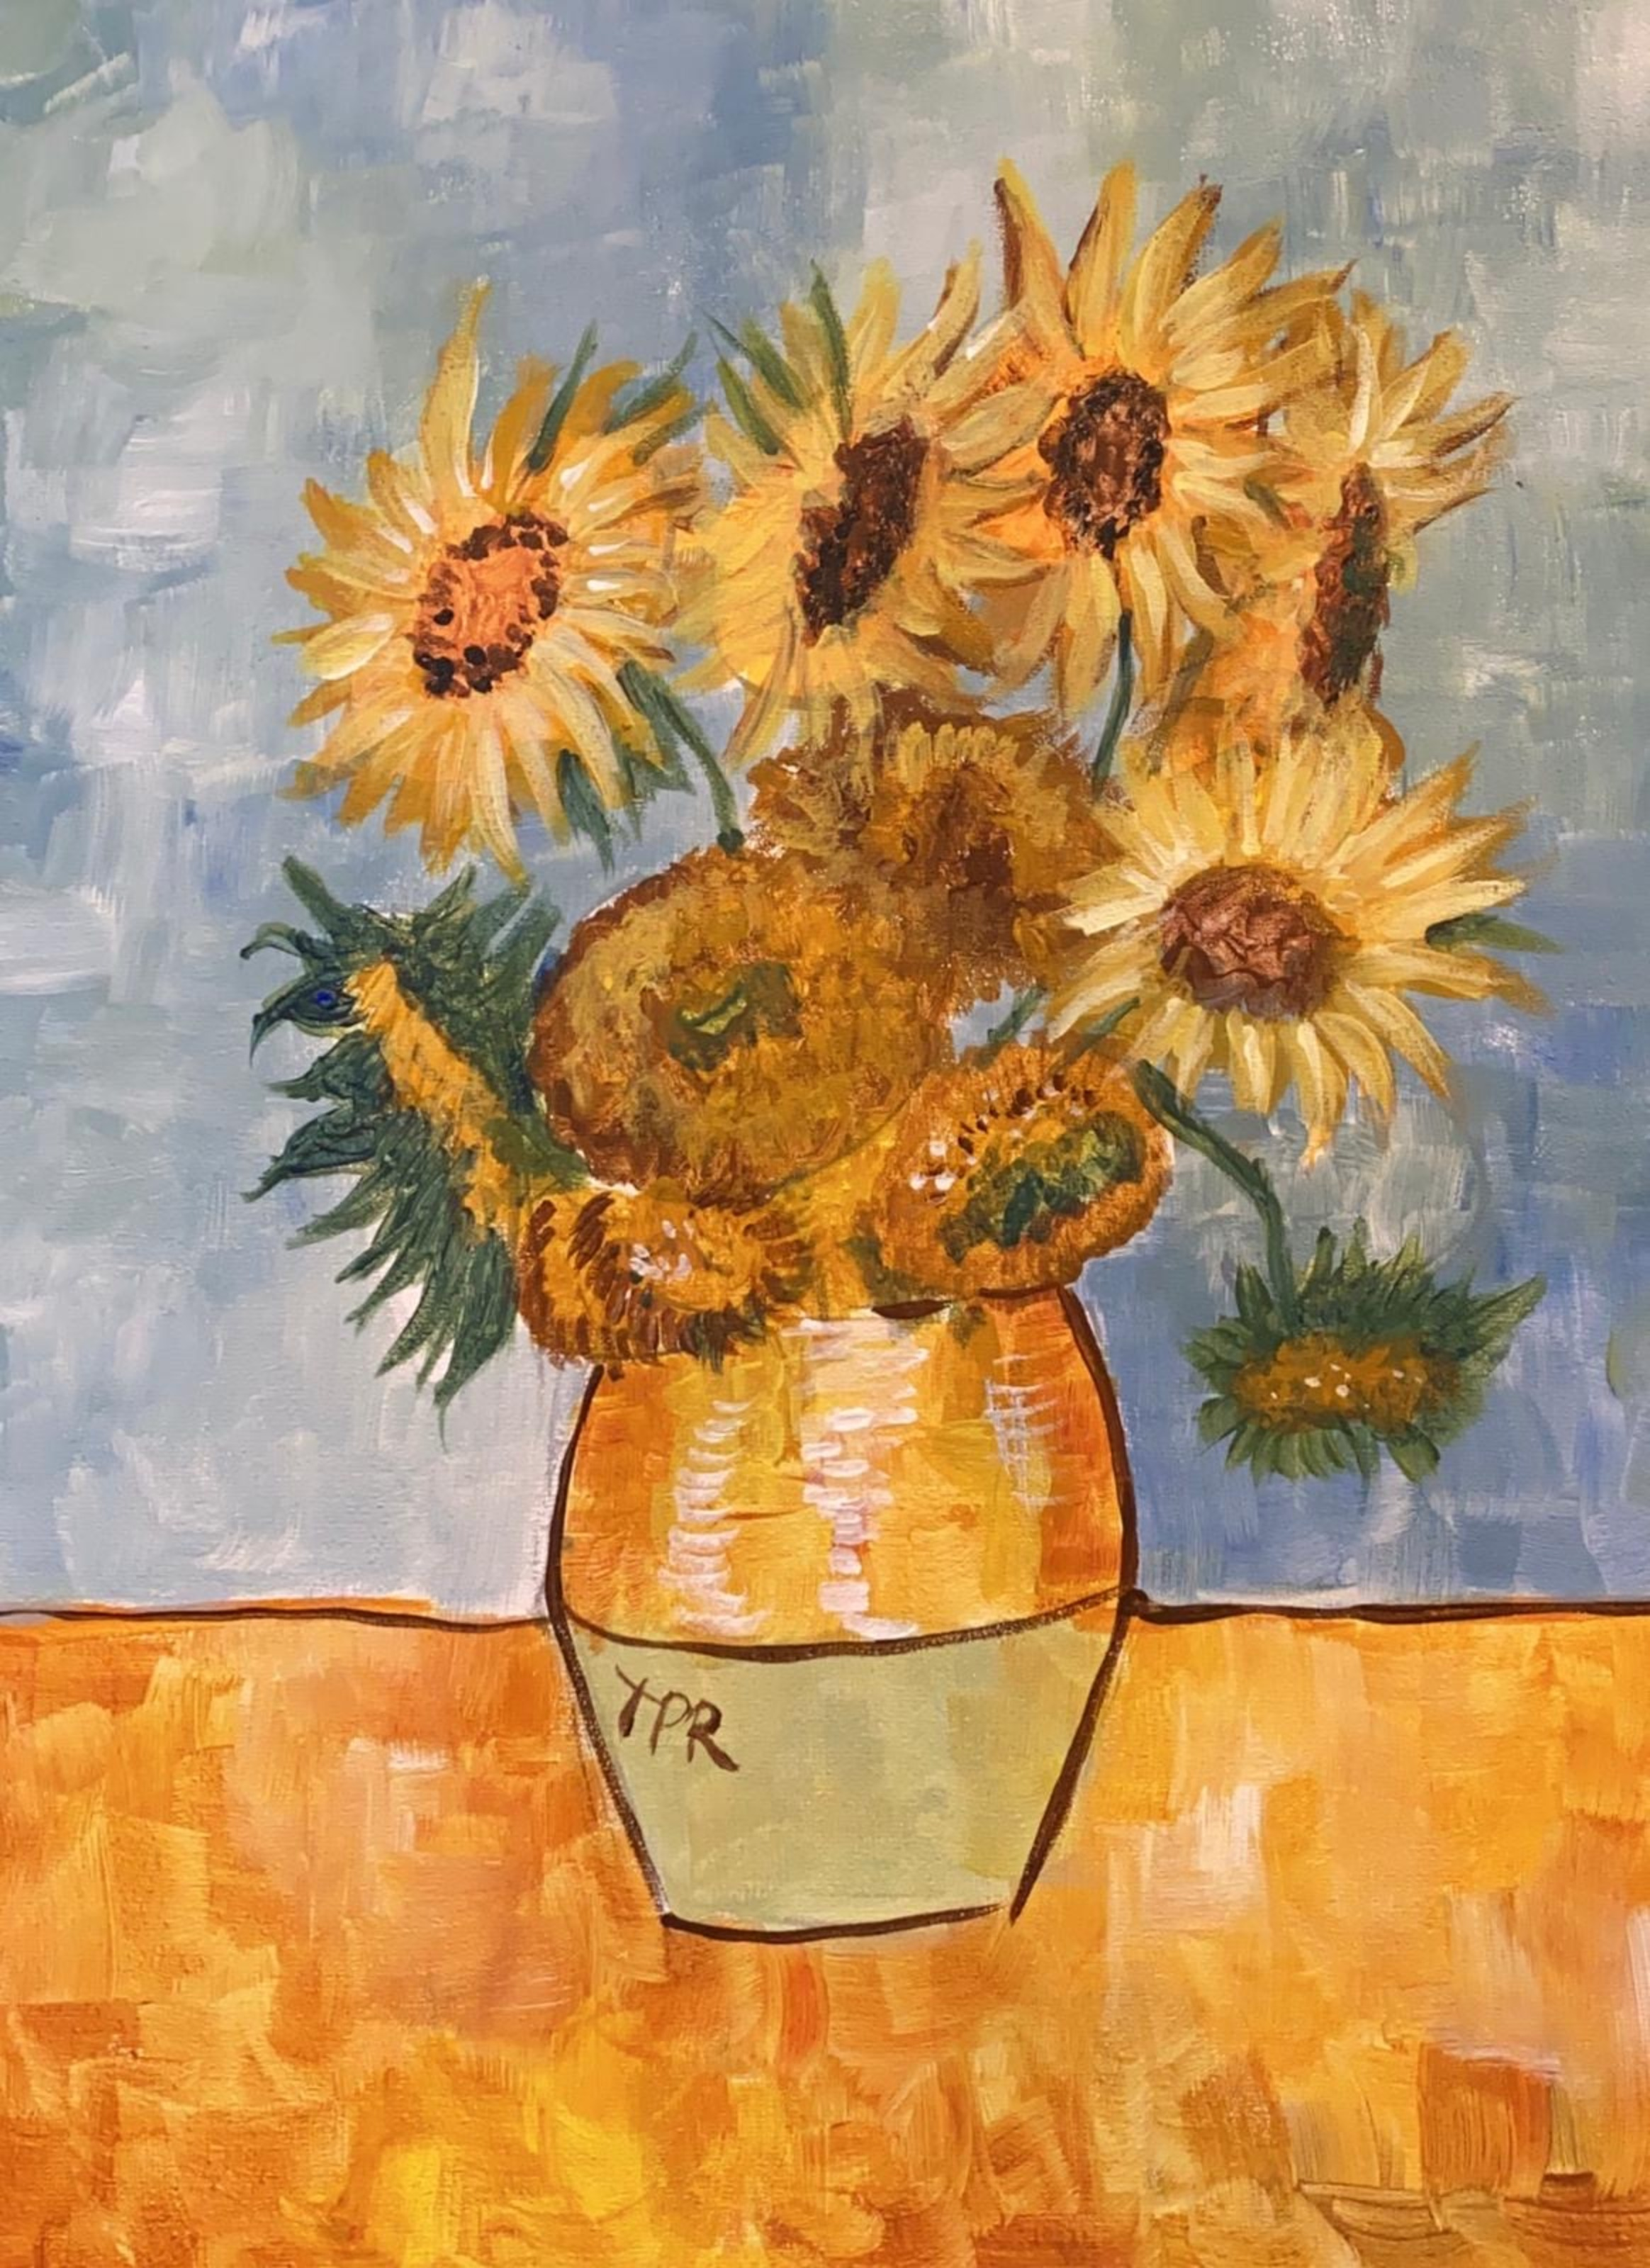 15/4/2020 Live Recording -Van Gogh's Sunflowers with Lindsay